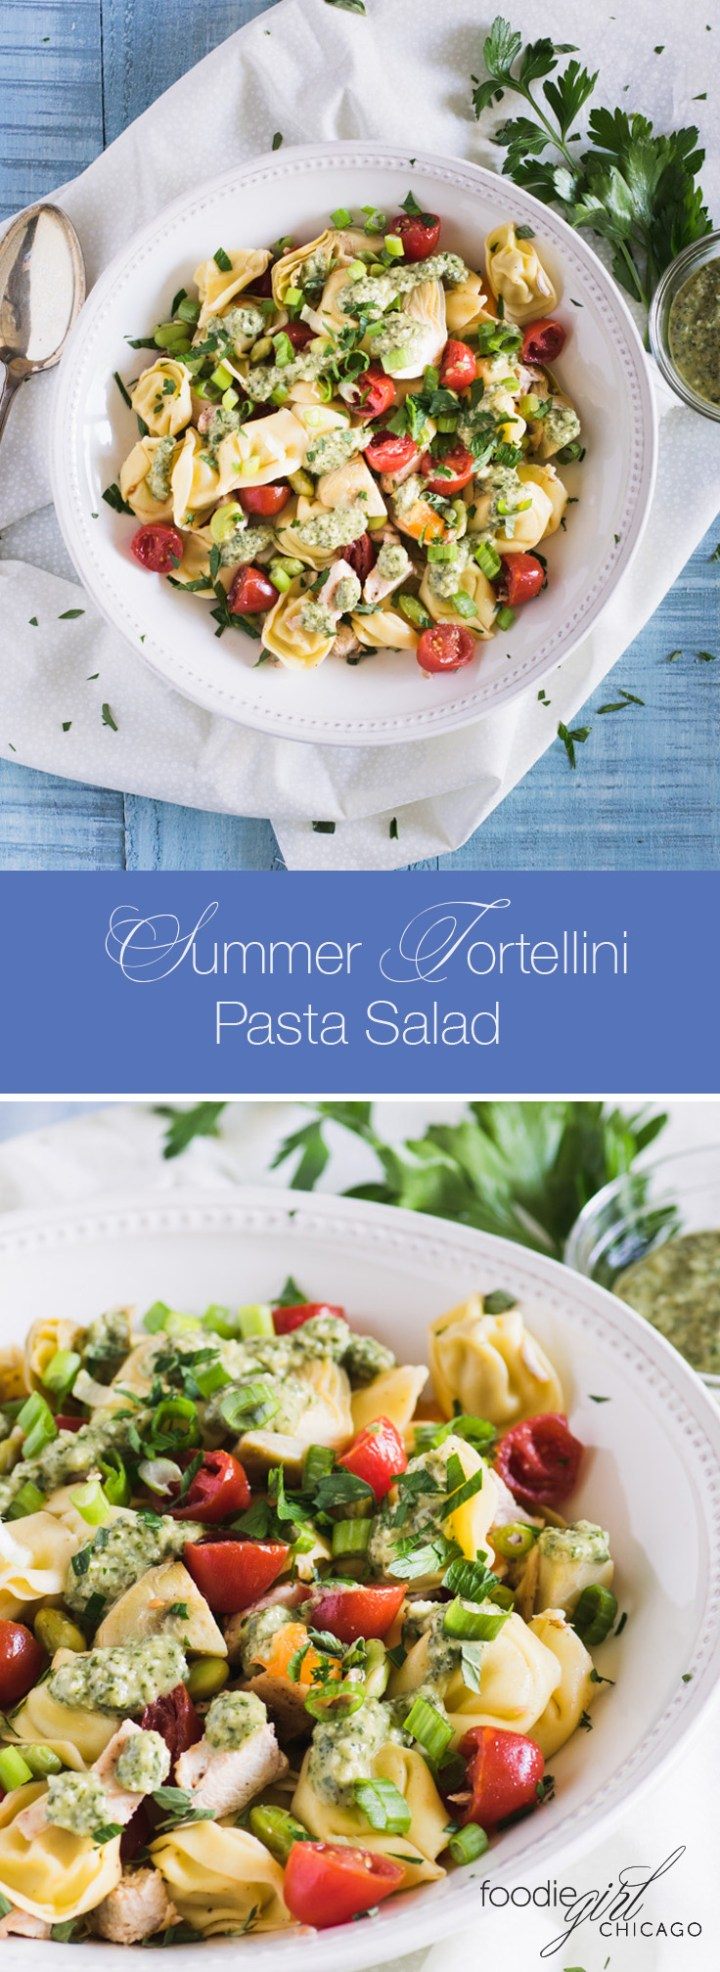 This lovely summer pasta salad is loaded with fresh veggies and topped with a delicious pesto dressing to give it an extra pop of flavor!